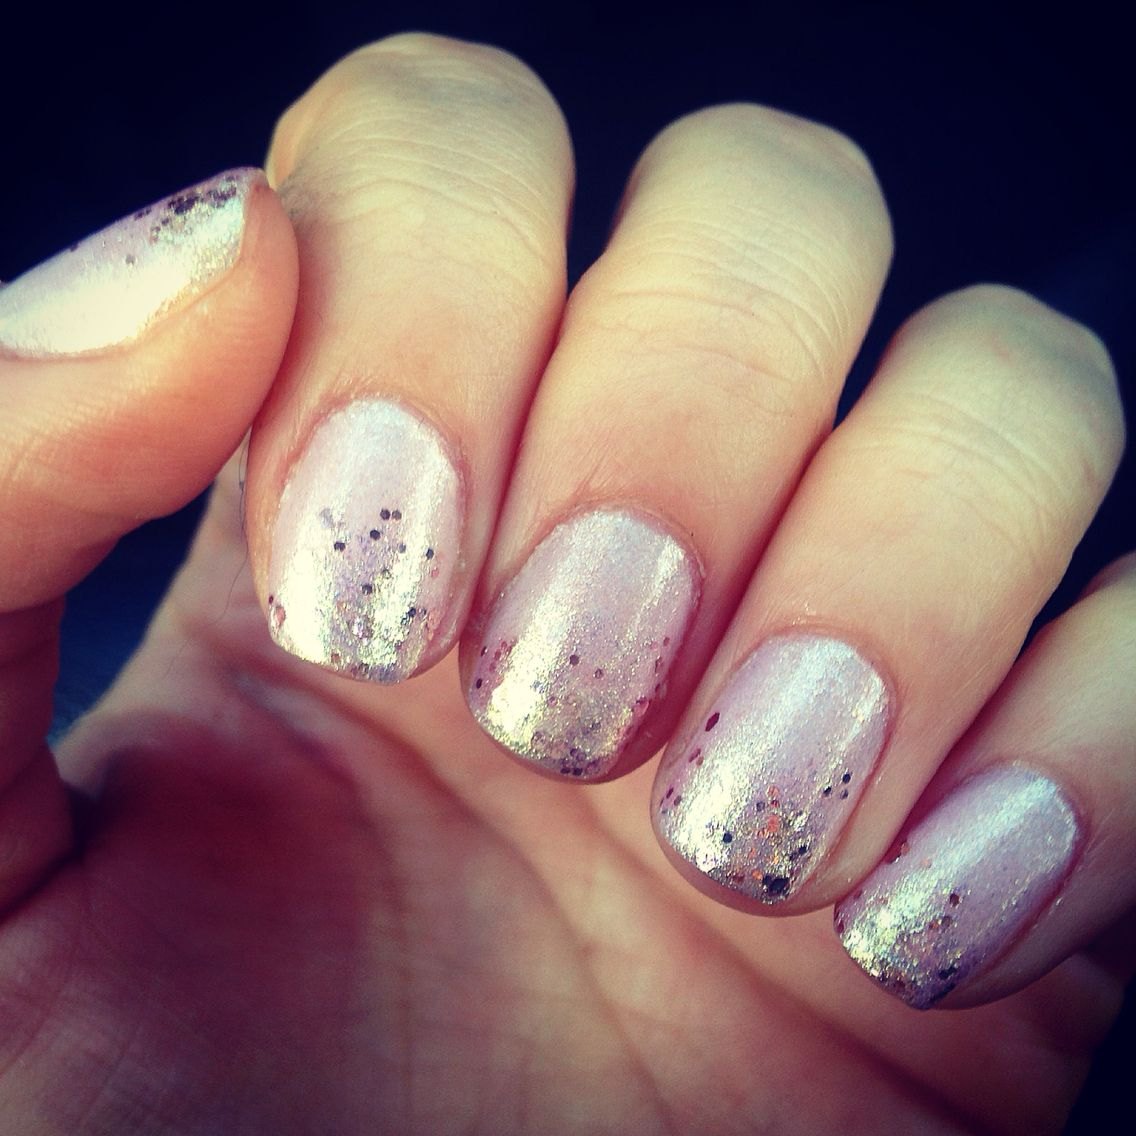 Sparkle tipped nails! #nails #nailpolish #sparkles